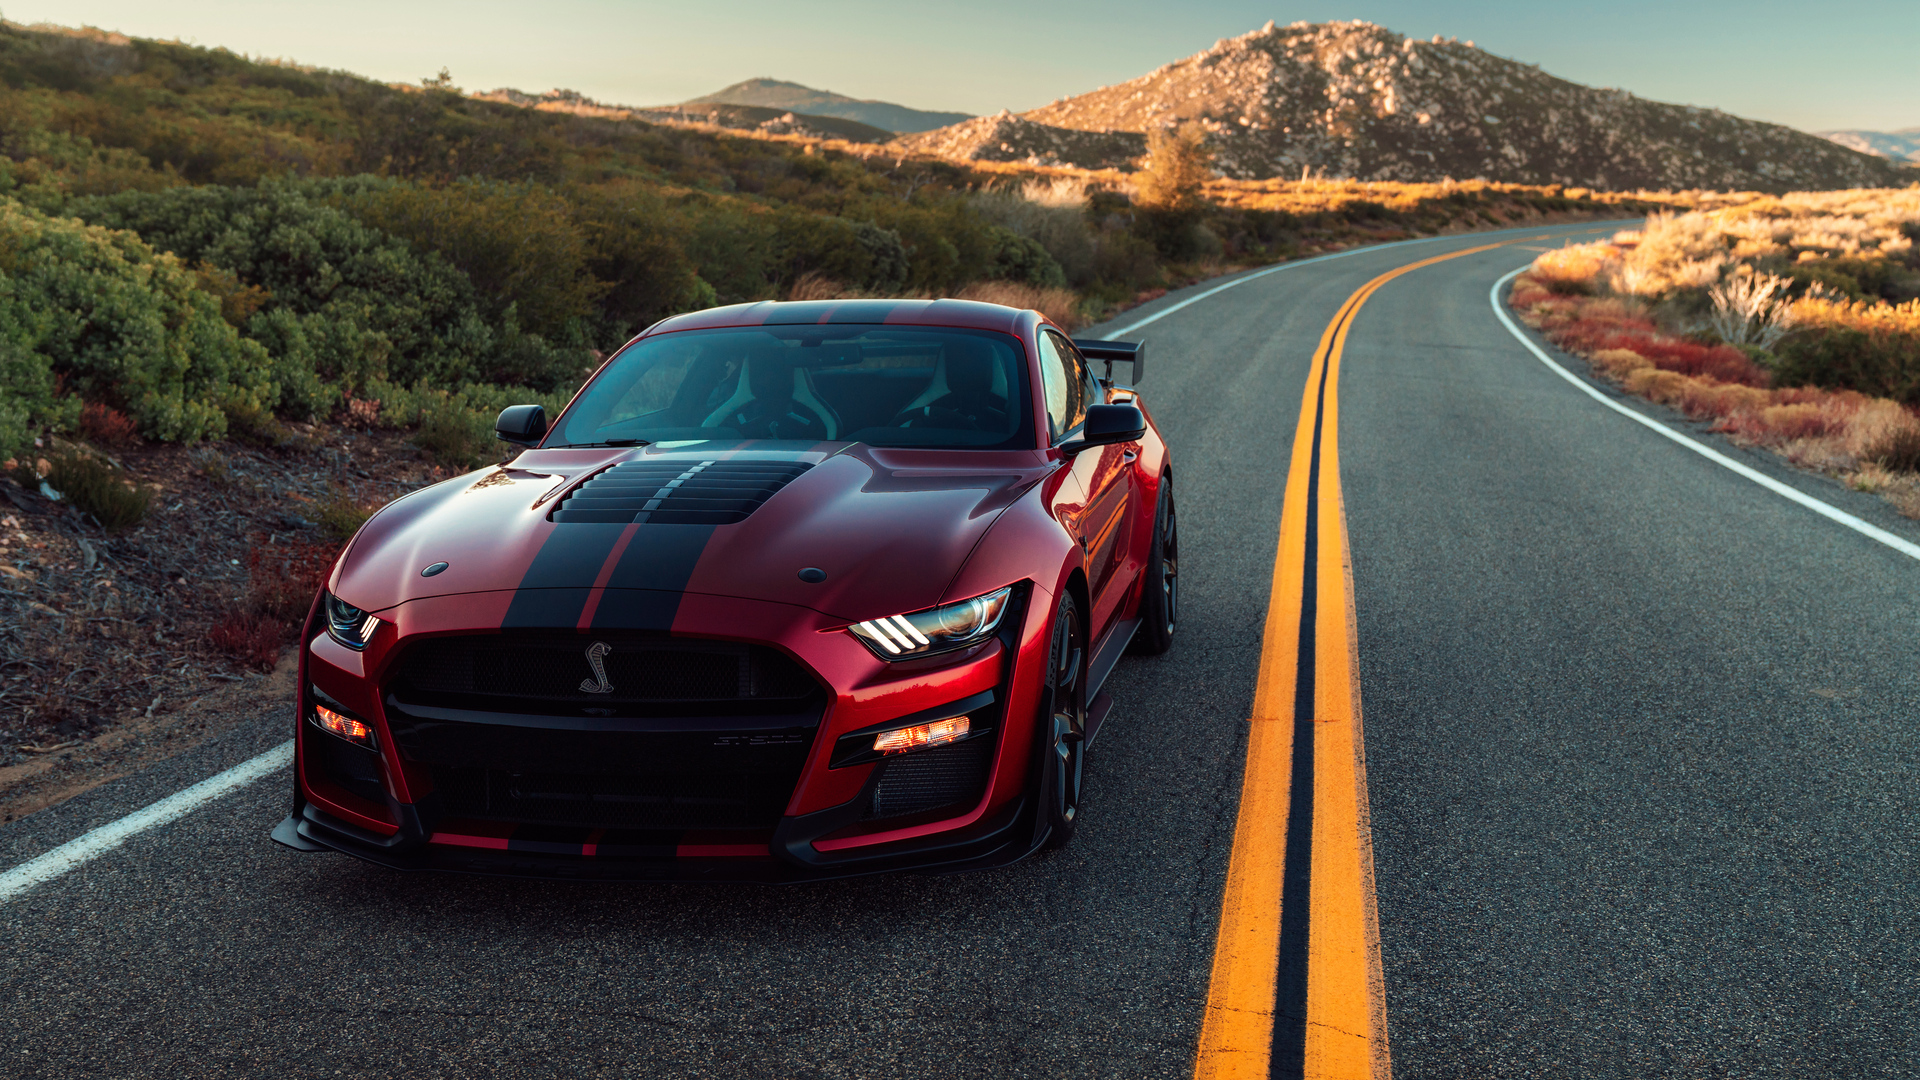 1920x1080 2020 Ford Mustang Shelby GT500 4k Laptop Full HD ...